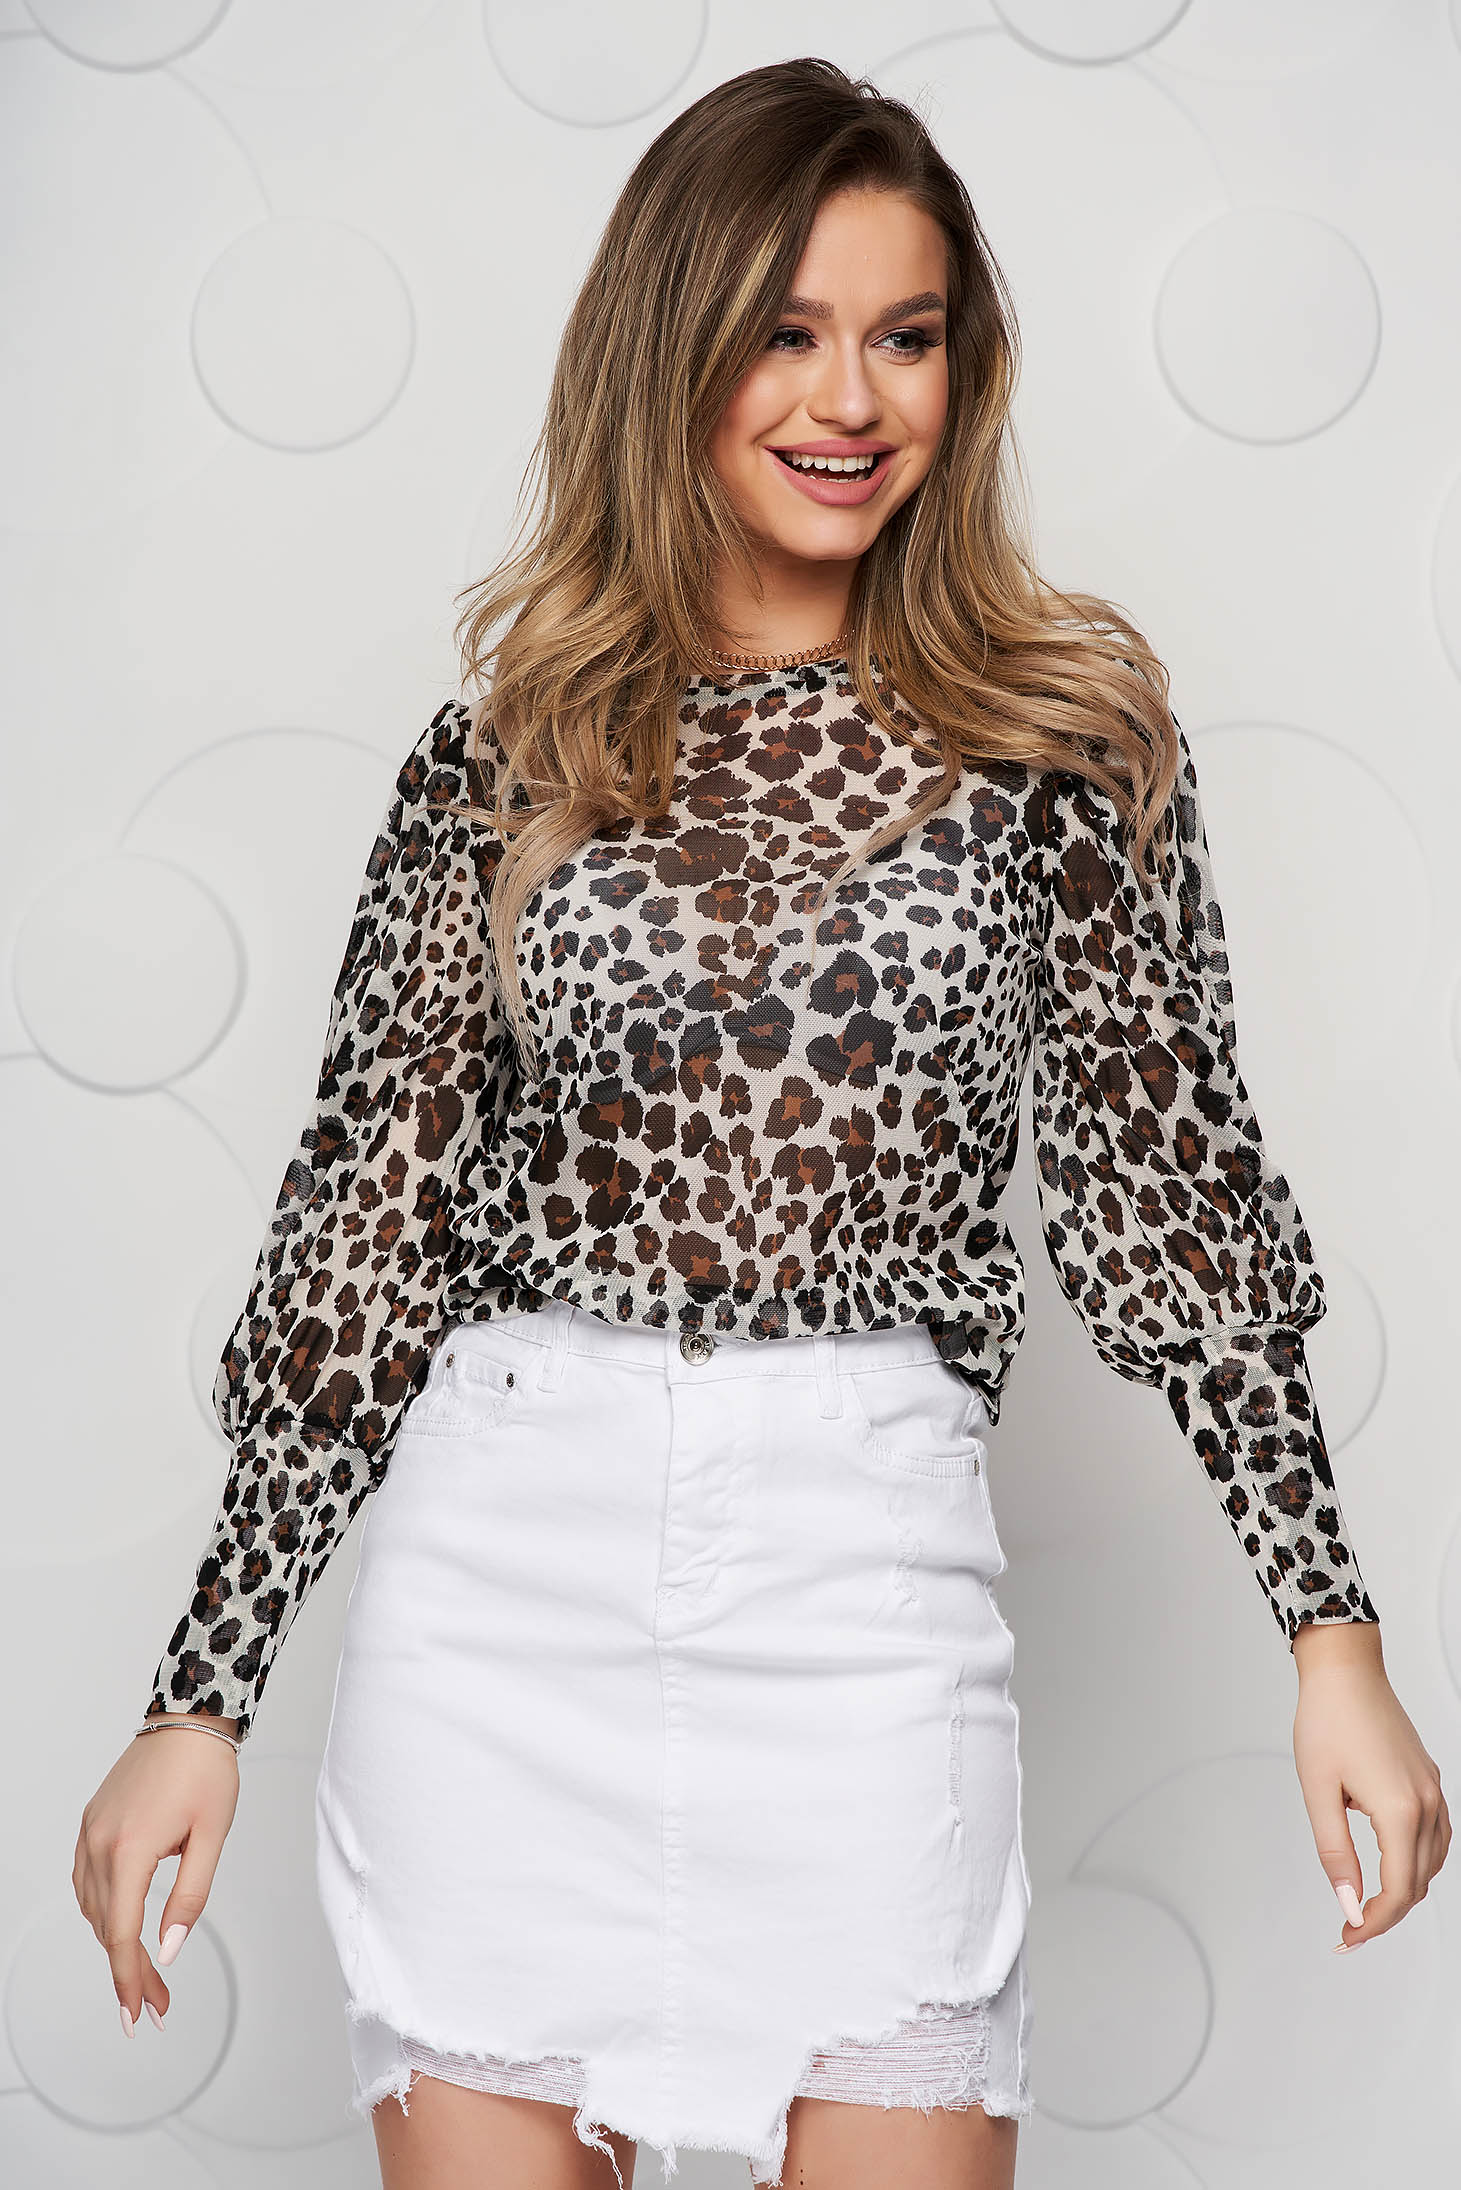 Peach women`s blouse casual tented with puffed sleeves airy fabric animal print